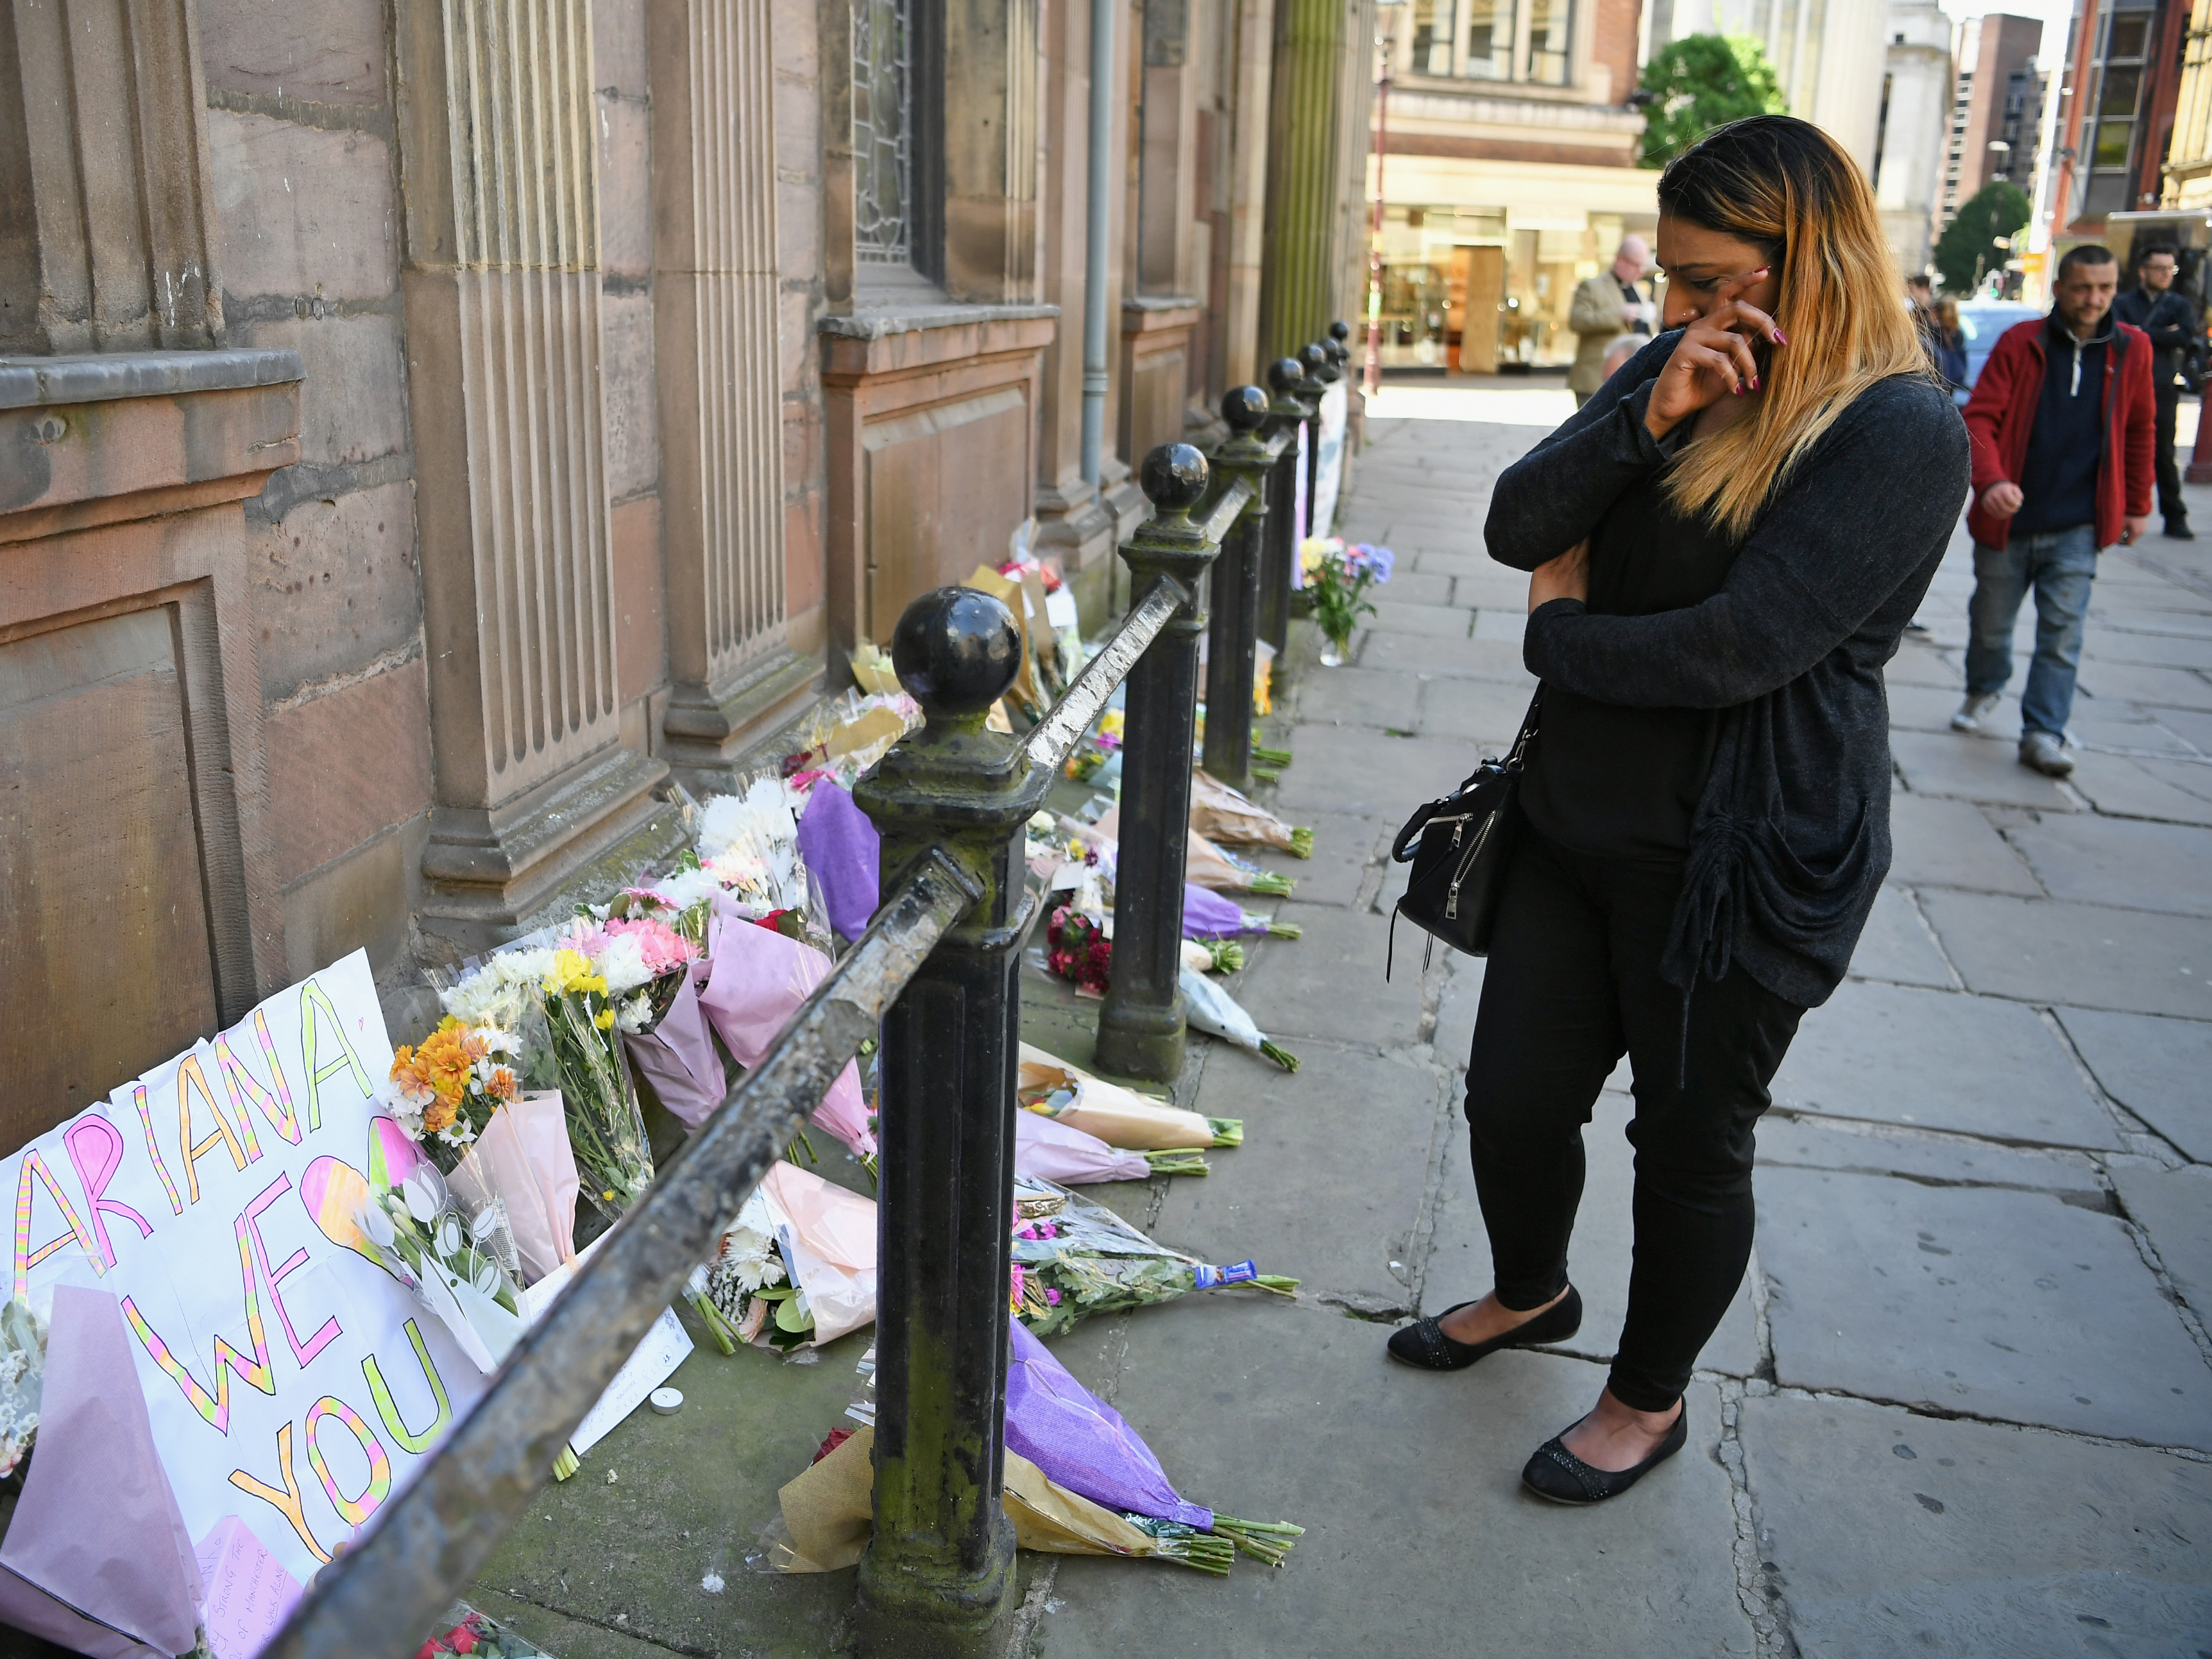 A woman looks at flowers left in Manchester's St. Ann Square on Tuesday, one day after a bomber carried out an attack at the end of an Ariana Grande concert in the city.     (Jeff Mitchell/Getty Images)